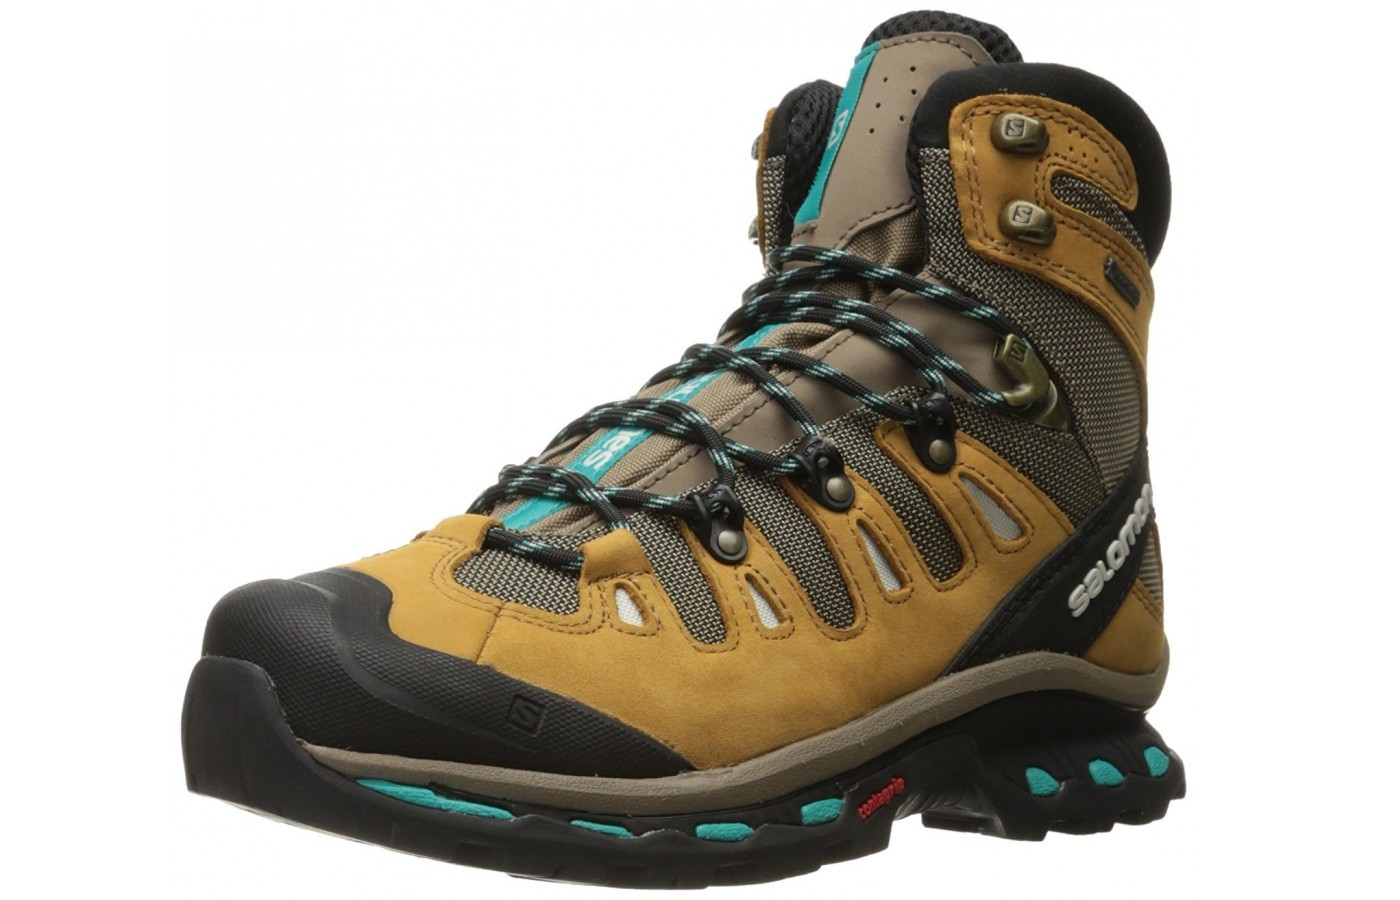 2e3c11af12ab Salomon Quest 4D 2 GTX Reviewed   Tested for Performance in 2019 ...